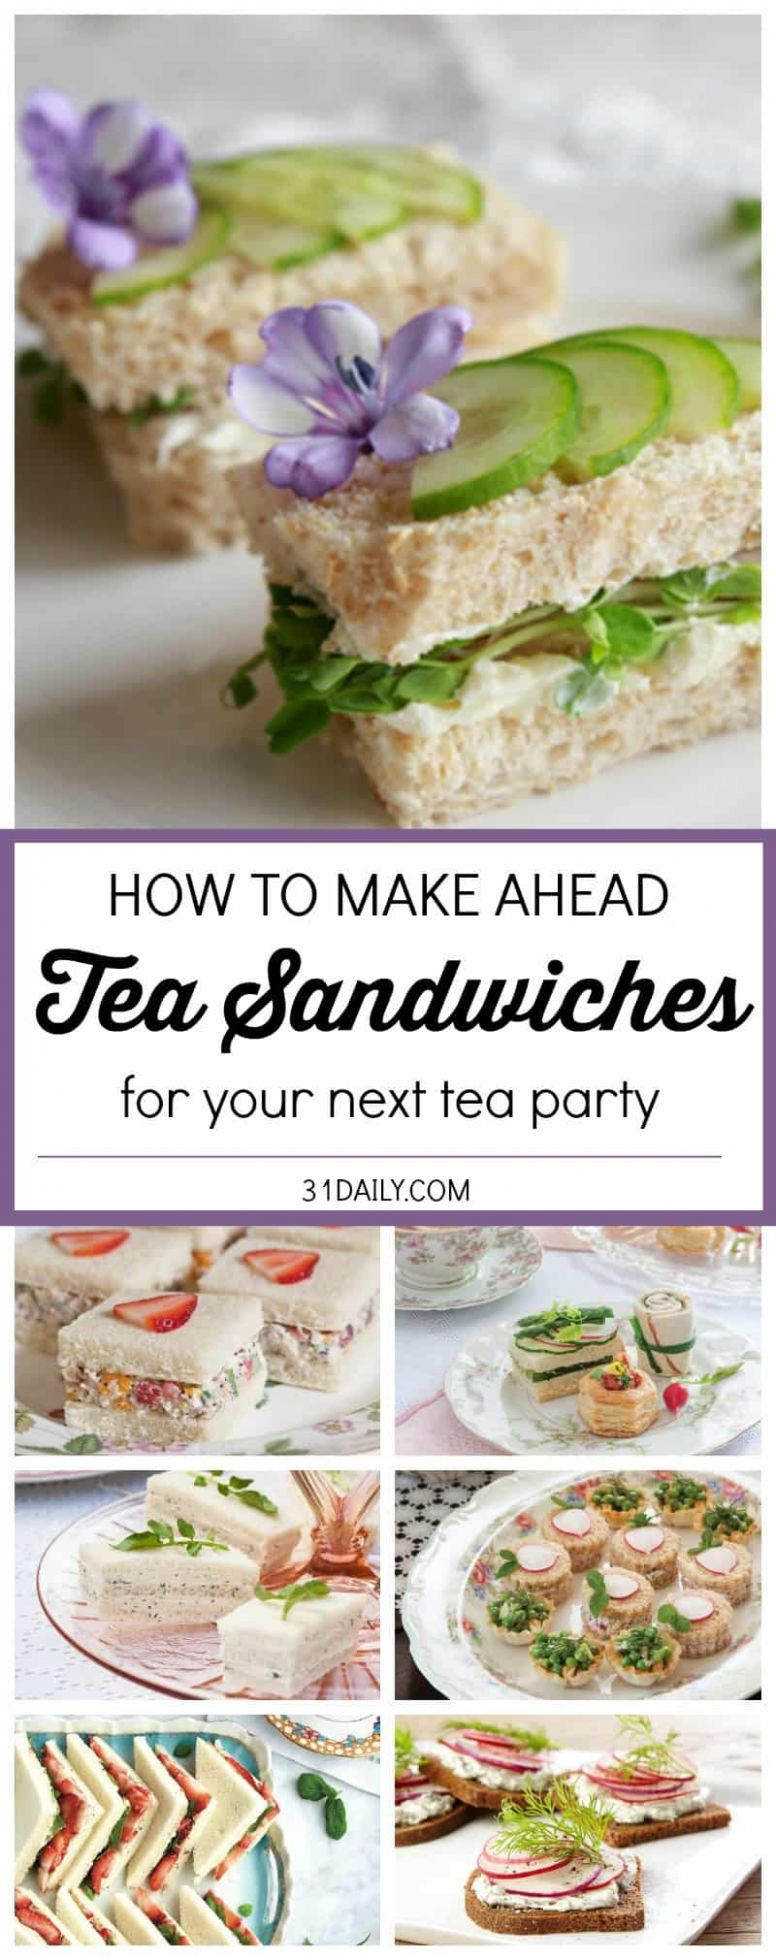 Easy Make Ahead Tea Sandwiches - 11 Daily